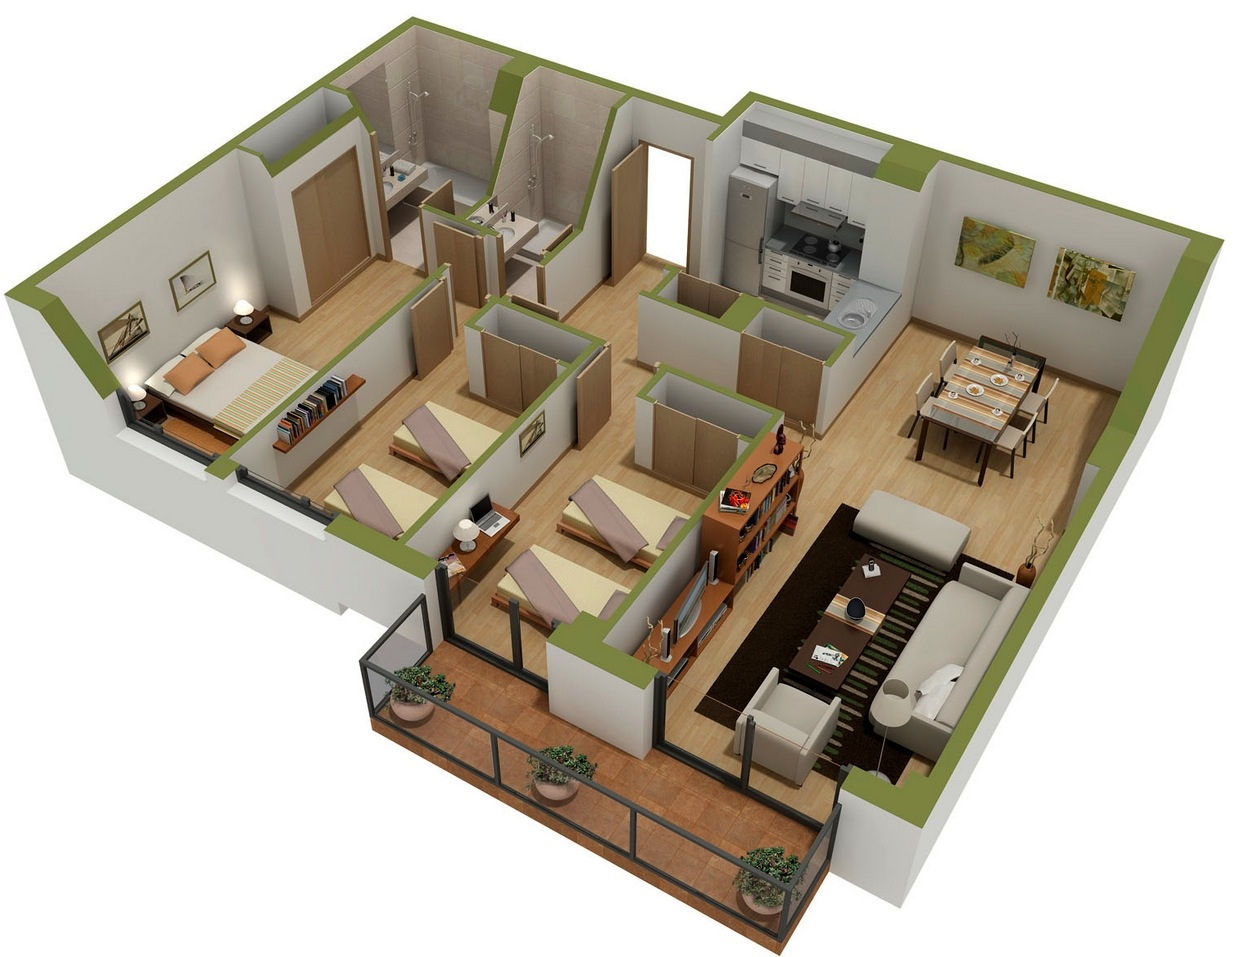 Awesome house layout design B2B » HOMETOSOU.COM